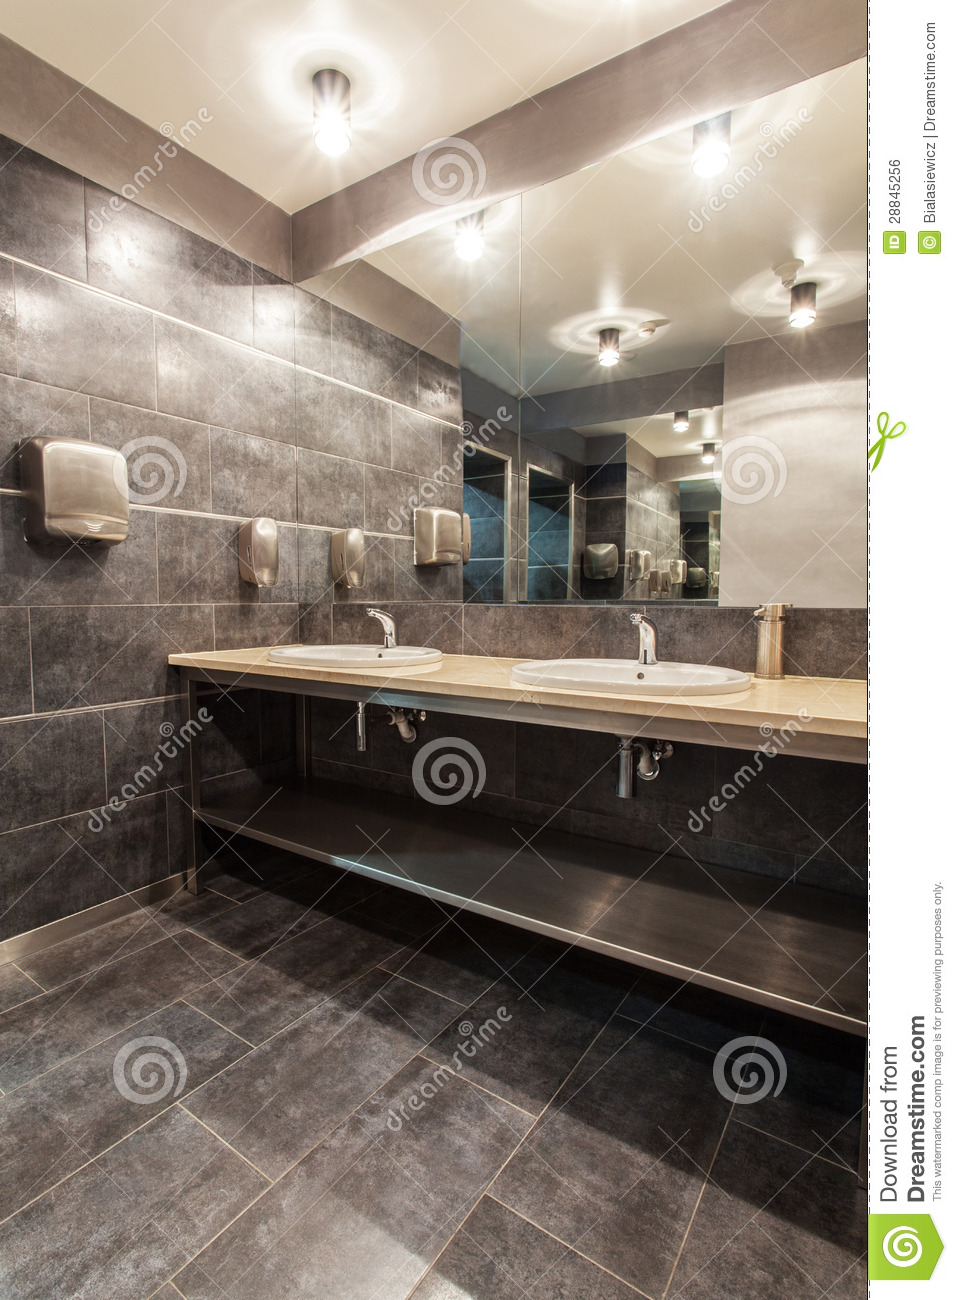 Woodland hotel public bathroom royalty free stock image for Y hotel shared bathroom